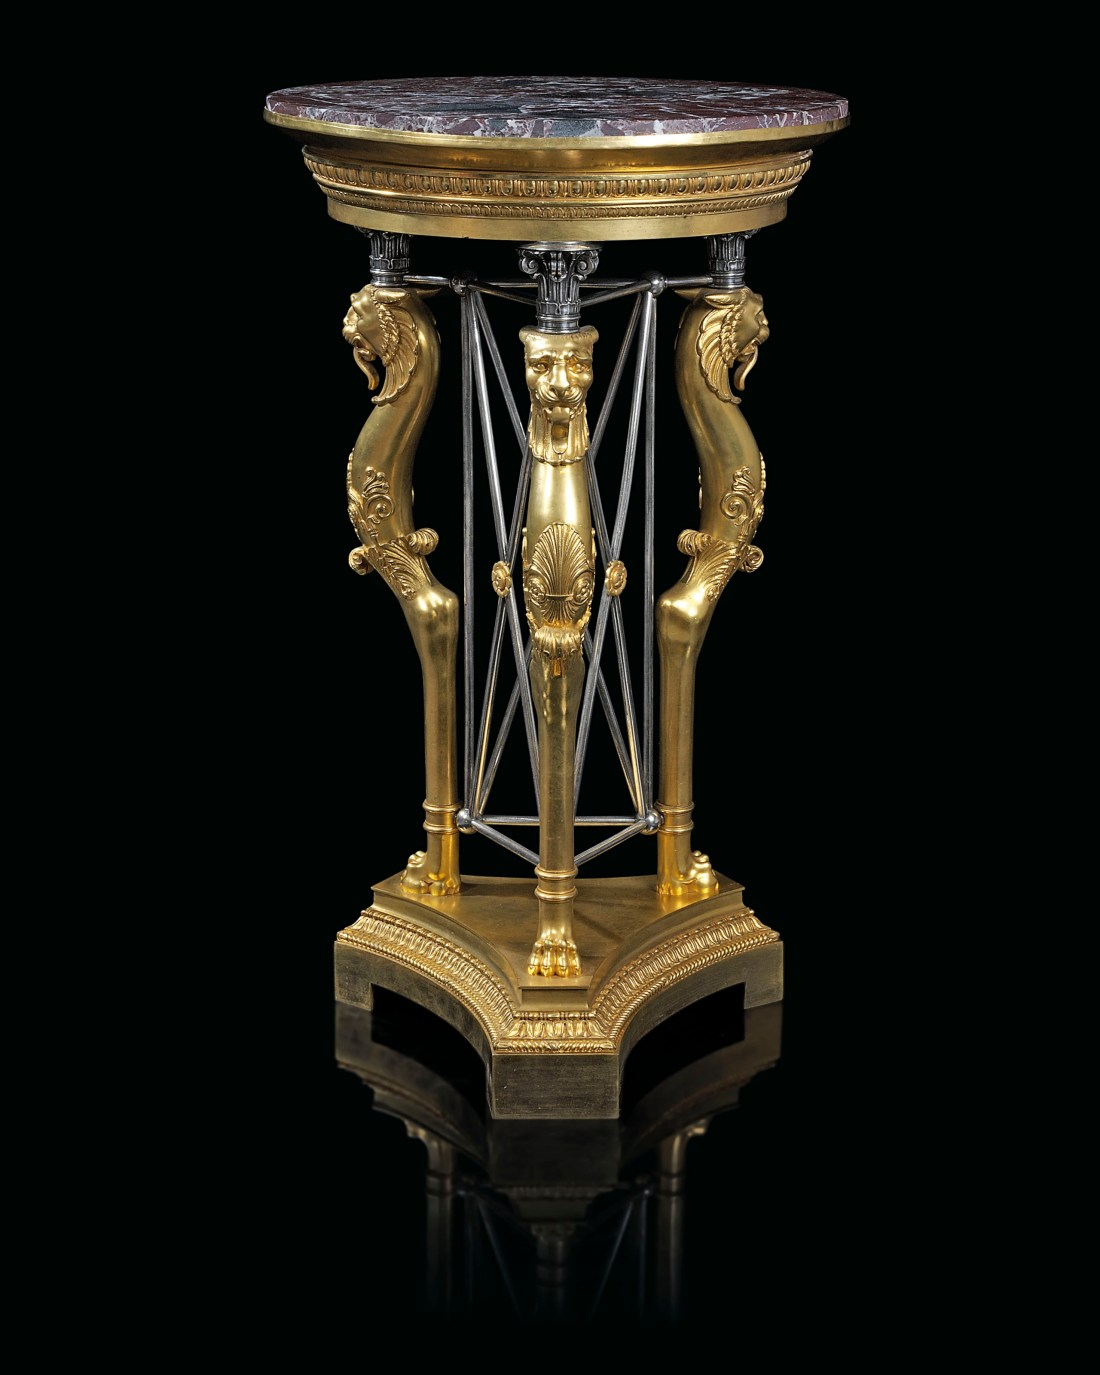 2018_CKS_15491_0562_002(a_french_gilt_and_silvered-bronze_gueridon_second_quarter_19th_century)